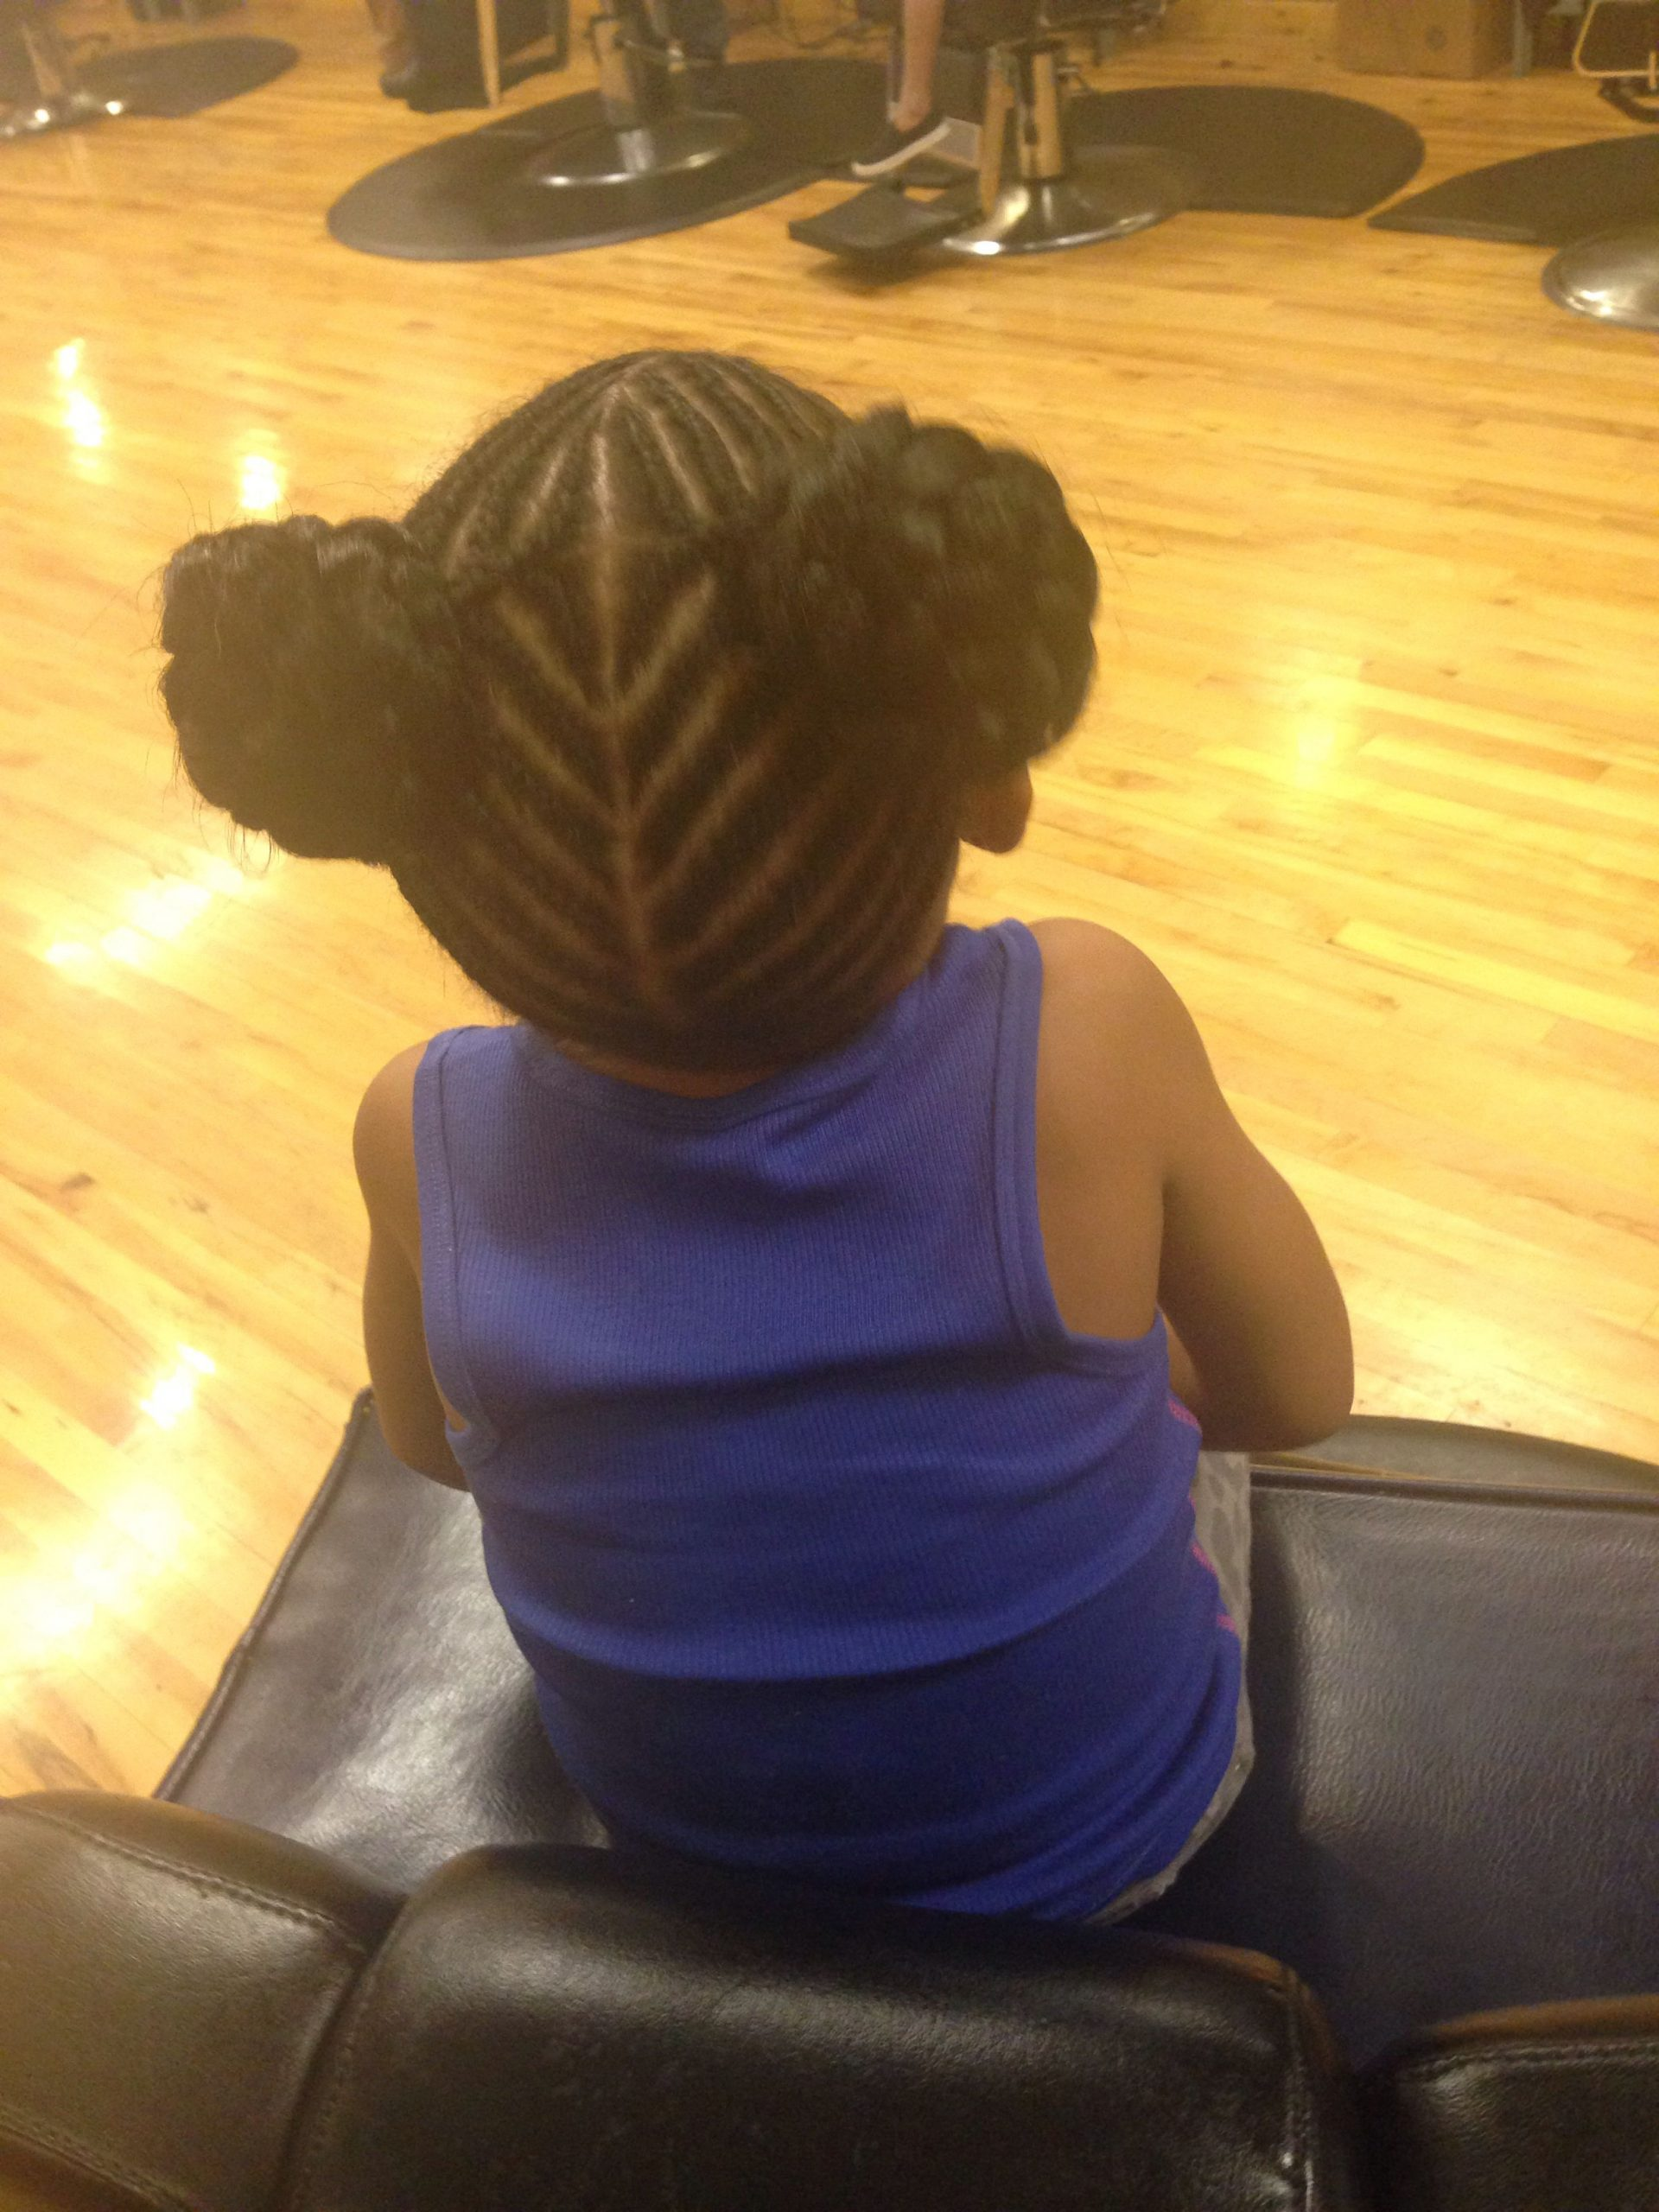 Cute hairstyles for kids hairstyleforblackwomen.net 235 scaled